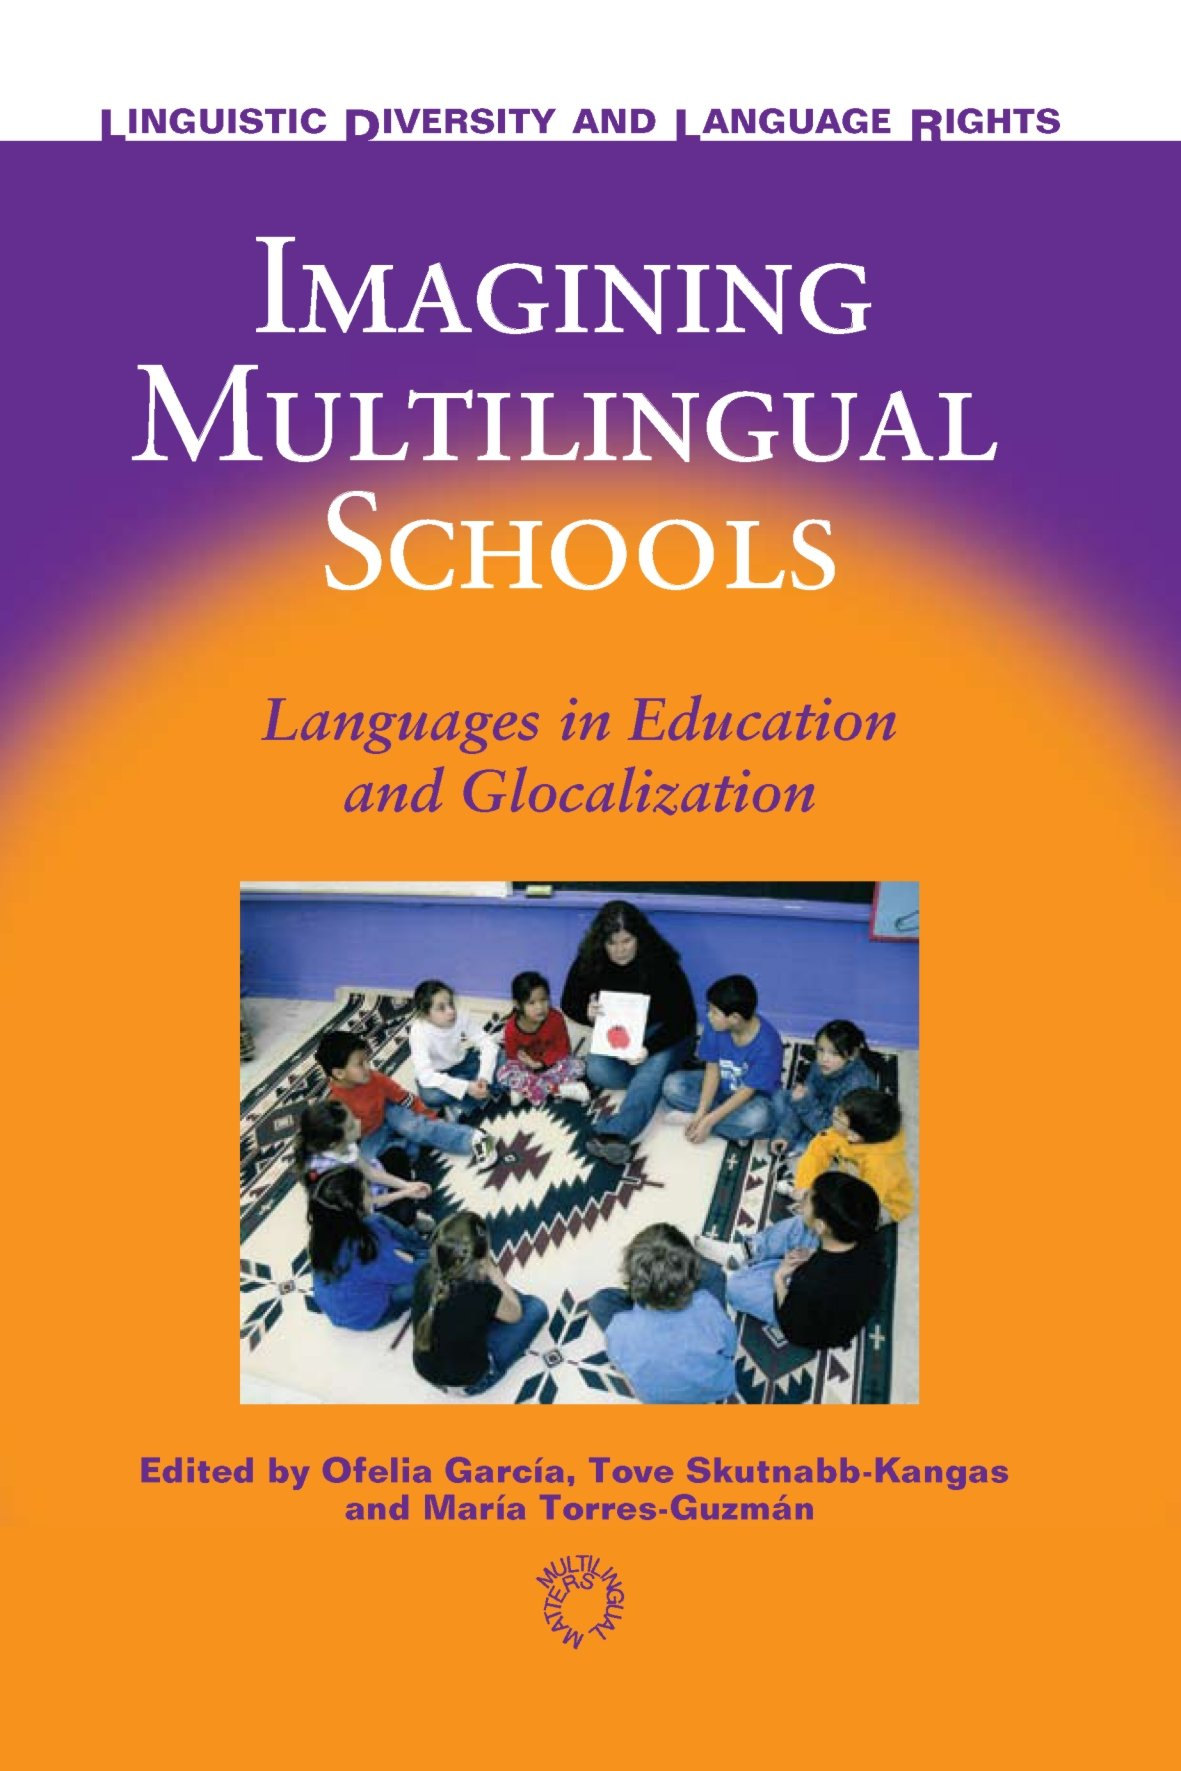 Imagining Multilingual Schools: Languages in Education and Glocalization (Linguistic Diversity and Language Rights) by Multilingual Matters